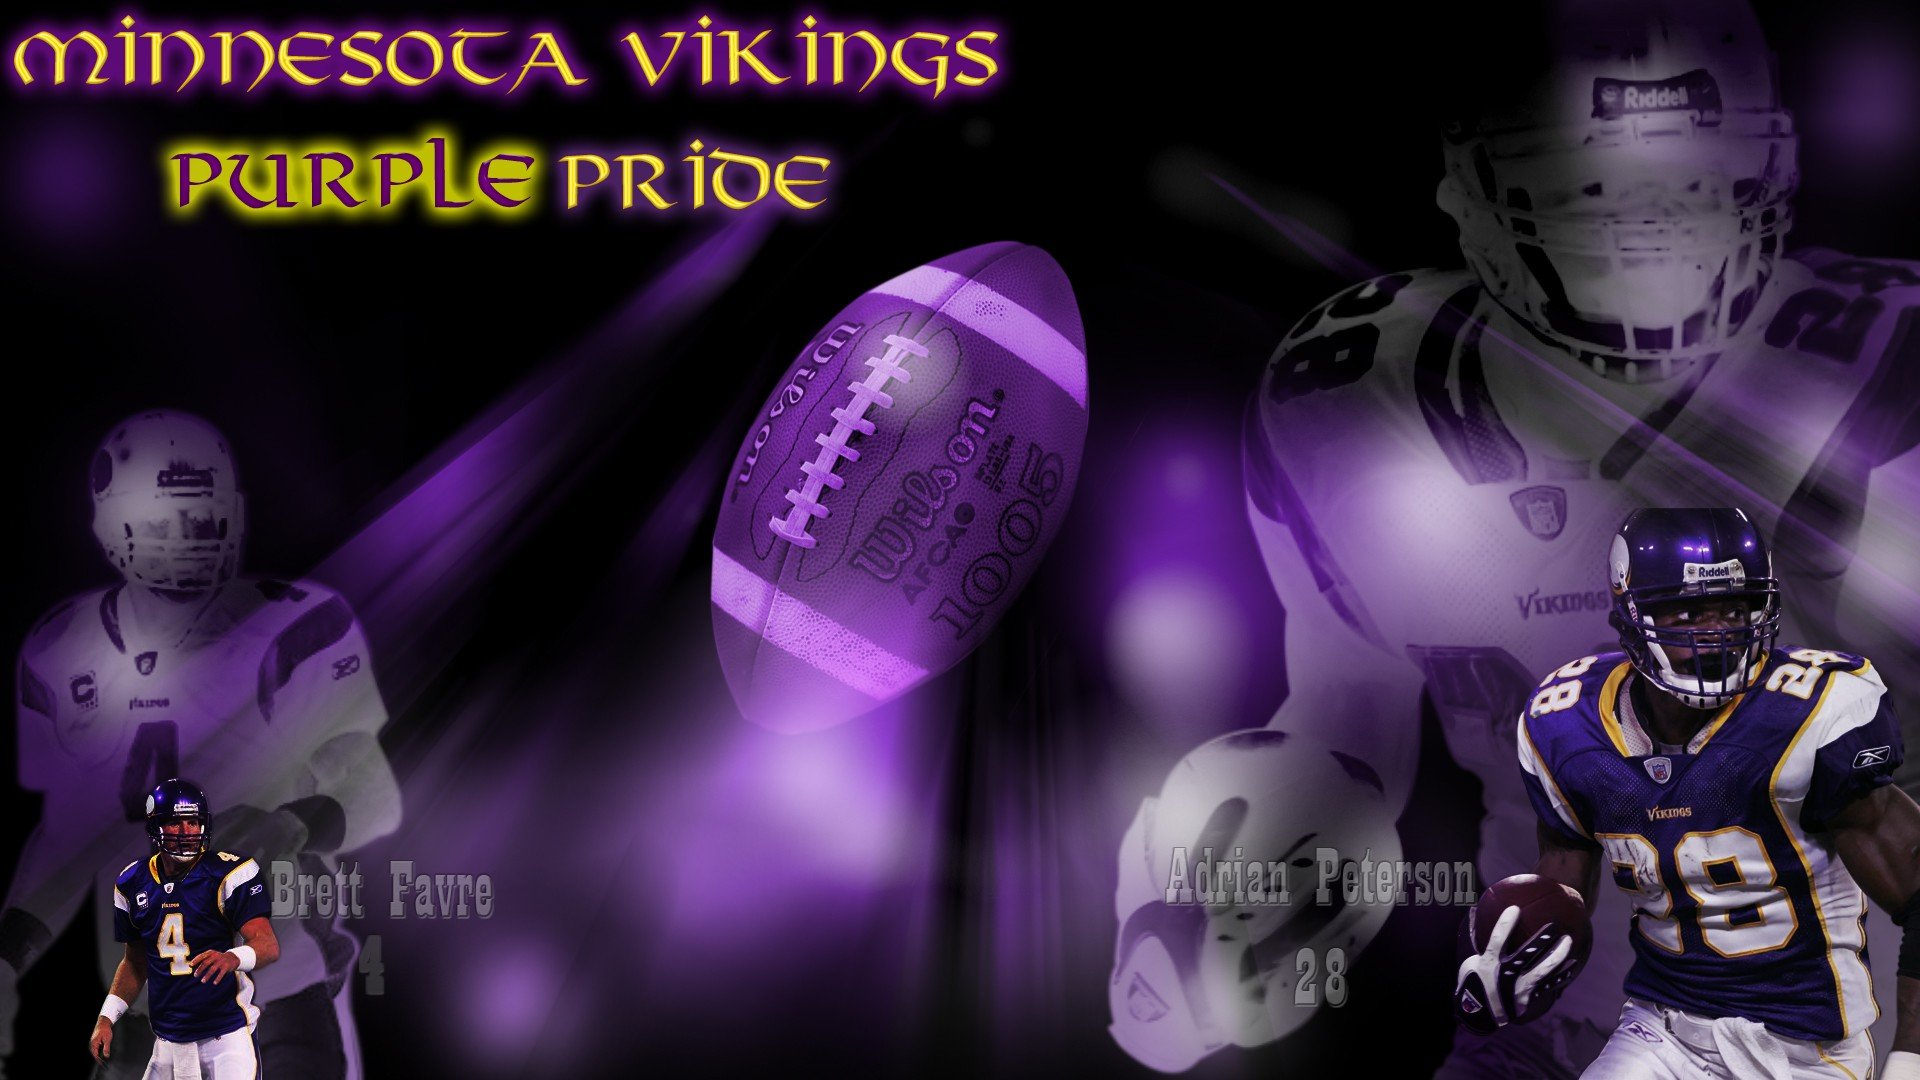 Minnesota Vikings Wallpapers 1920x1080 Full Hd 1080p Desktop